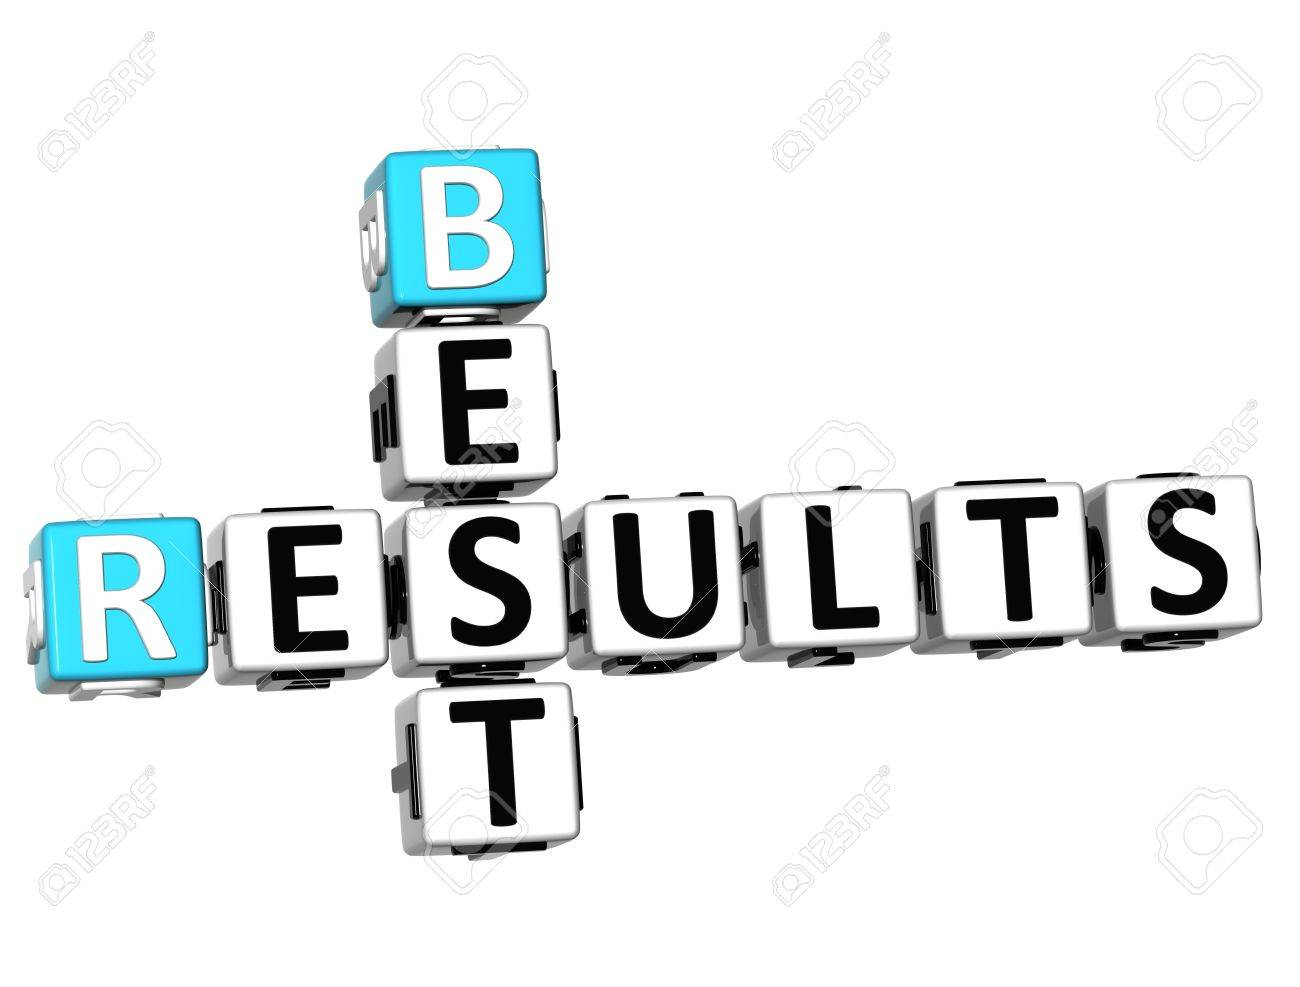 3D Best Results Crossword on white background Stock Photo - 13700688